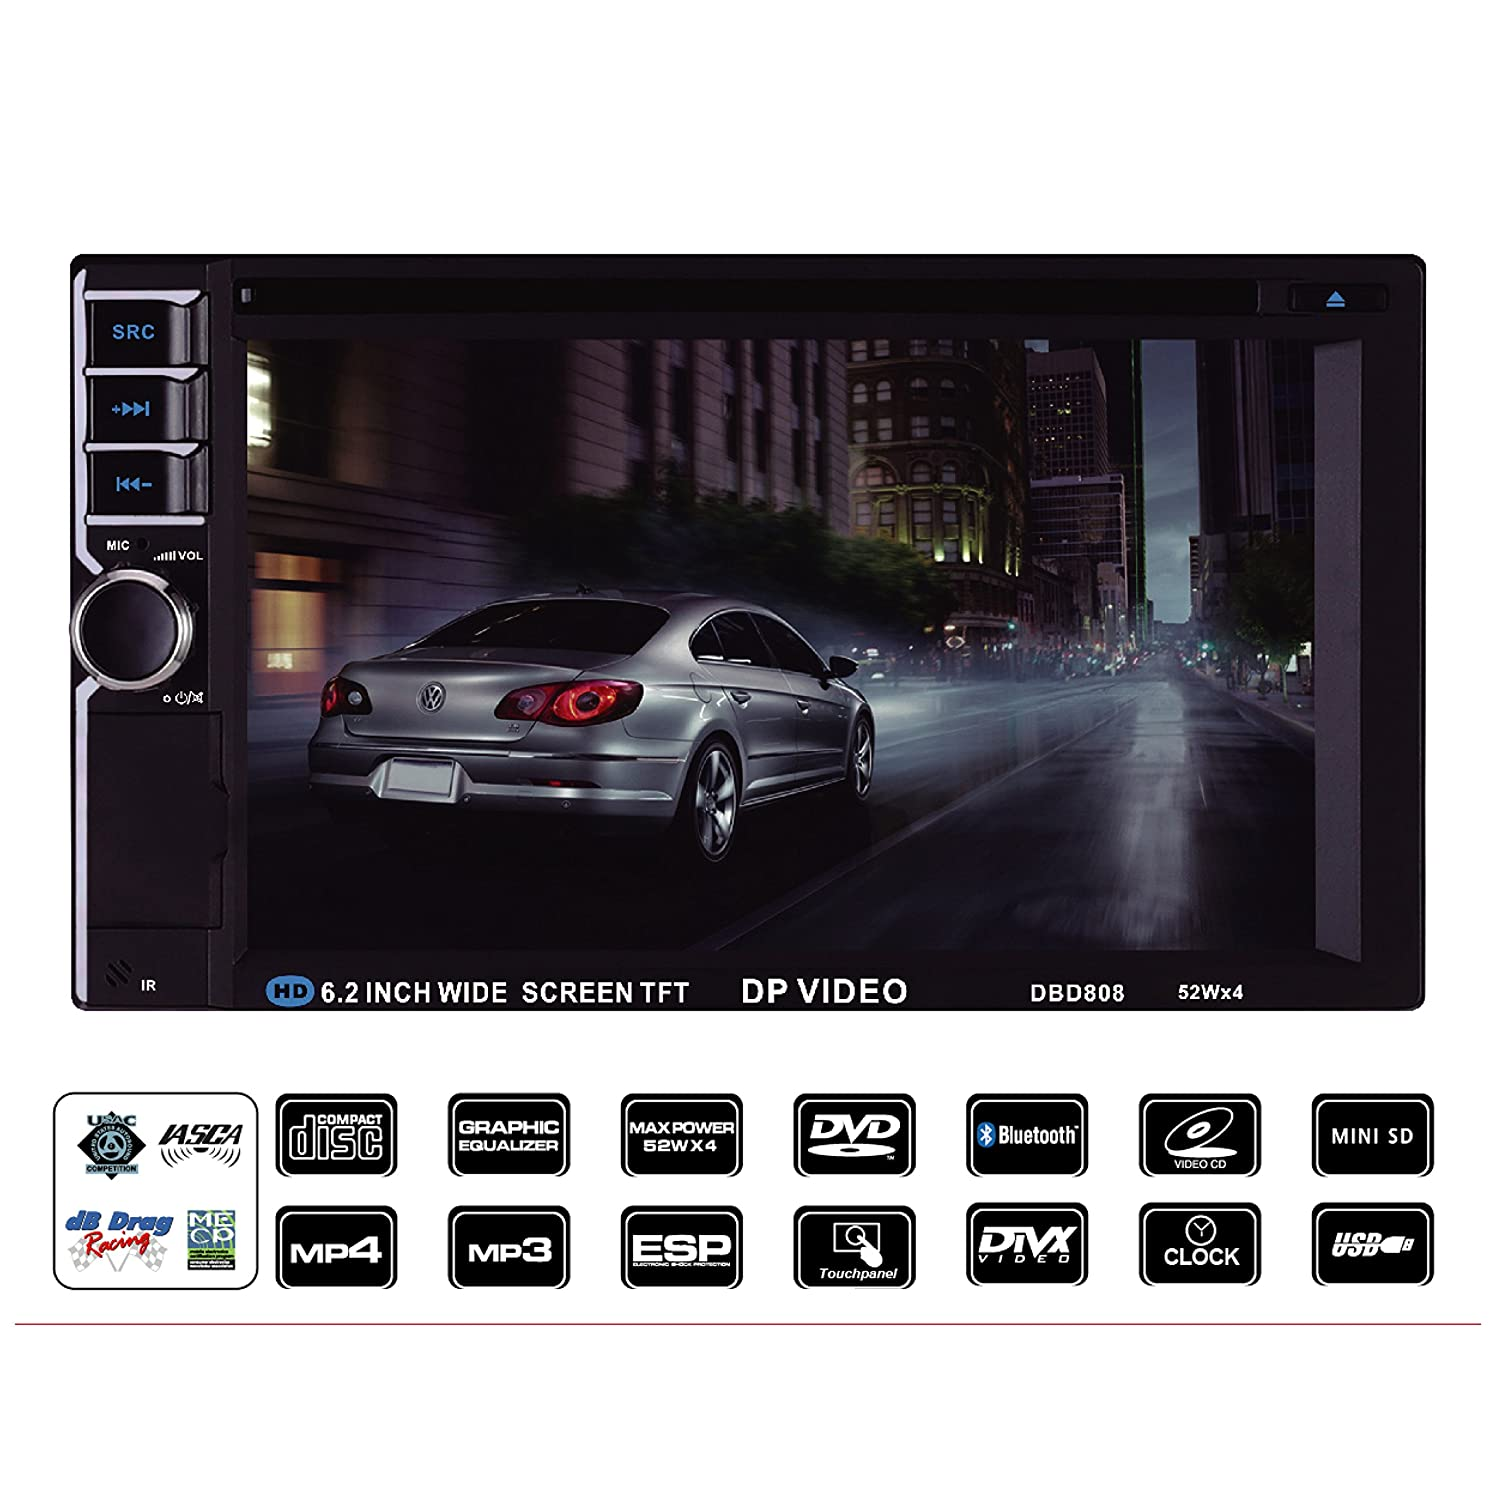 amazon com dp audio video dbd808 6 2 inch double din multimedia rh amazon com Car Audio Speakers Car Auido